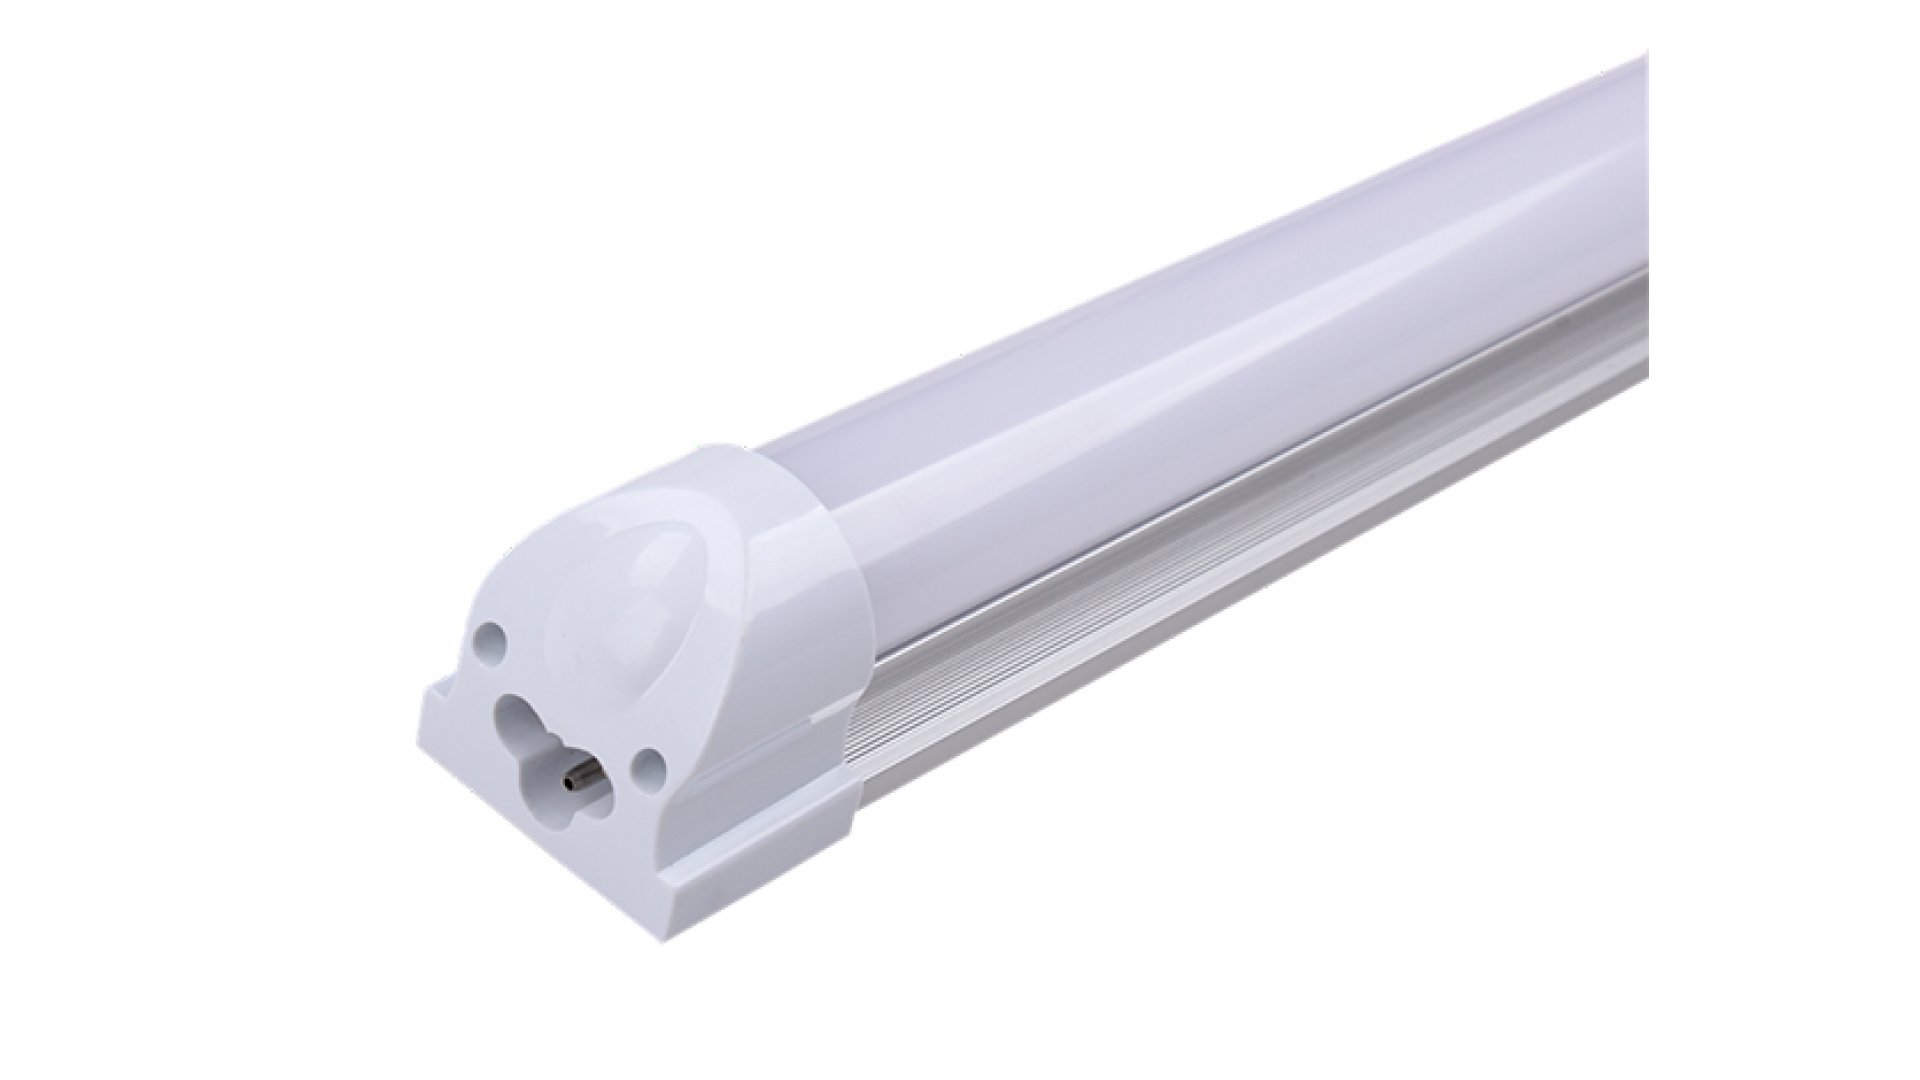 Led T8 Blt101642 4 Ft Integrated T8 Tubes